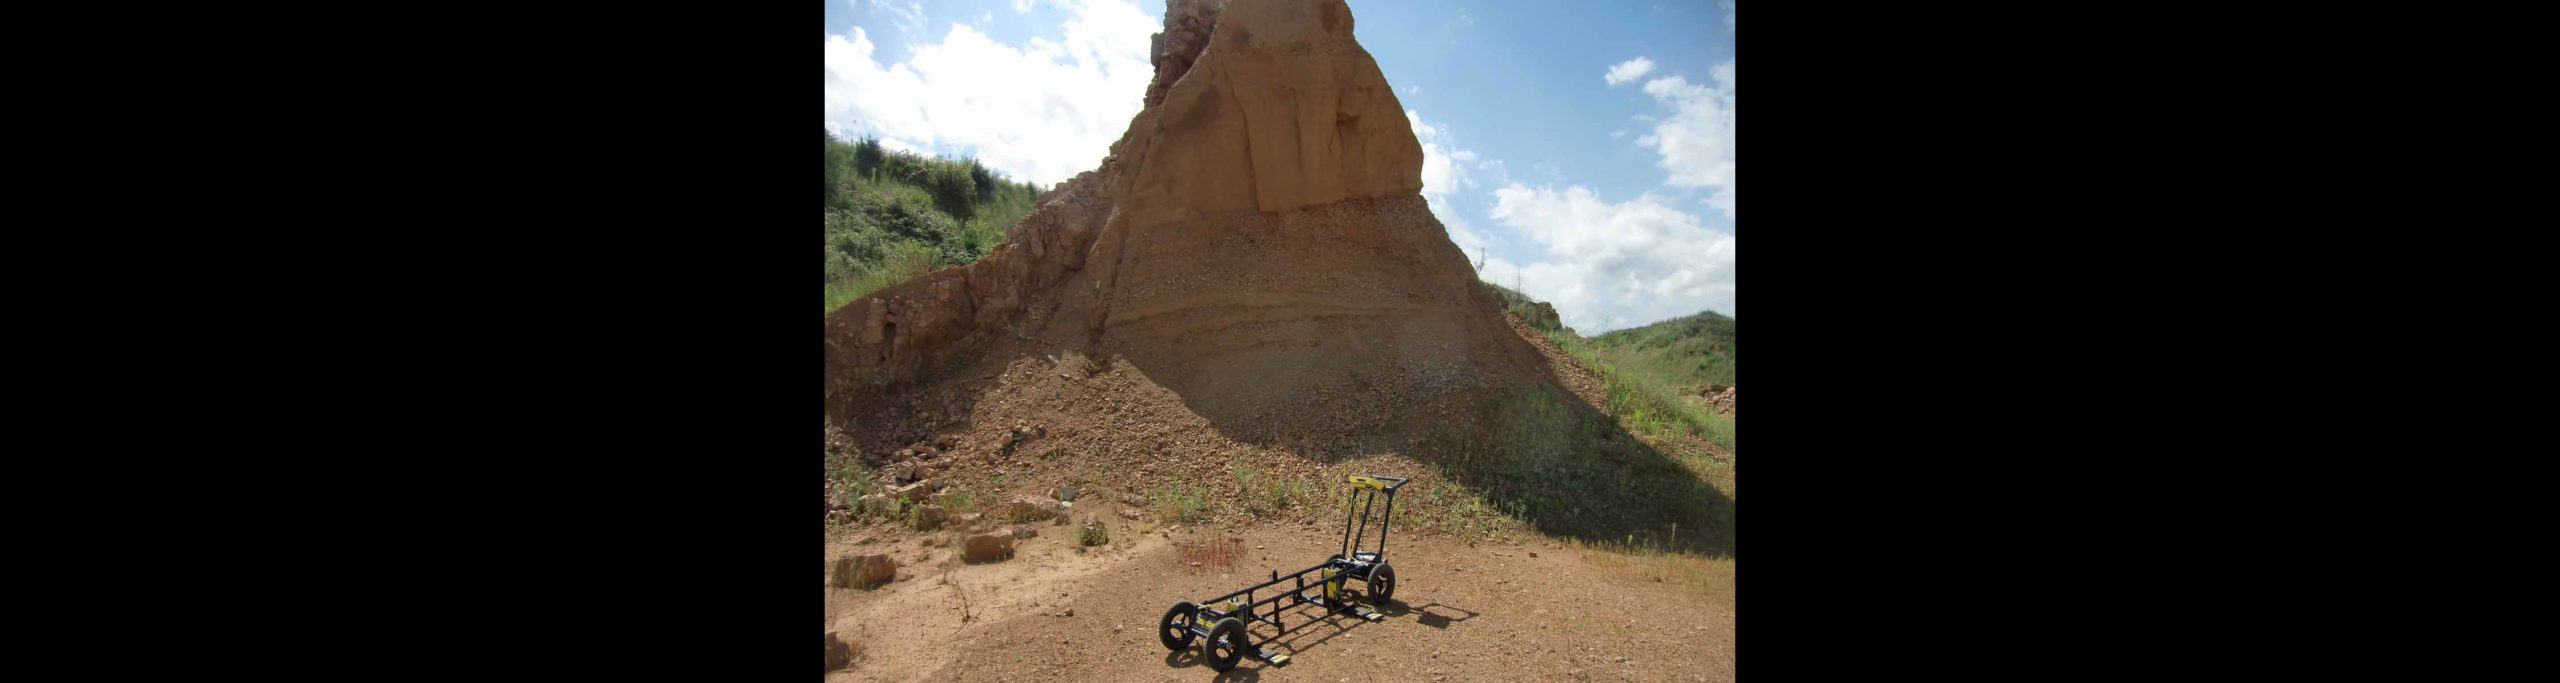 Mapping Sand and Gravel With GPR